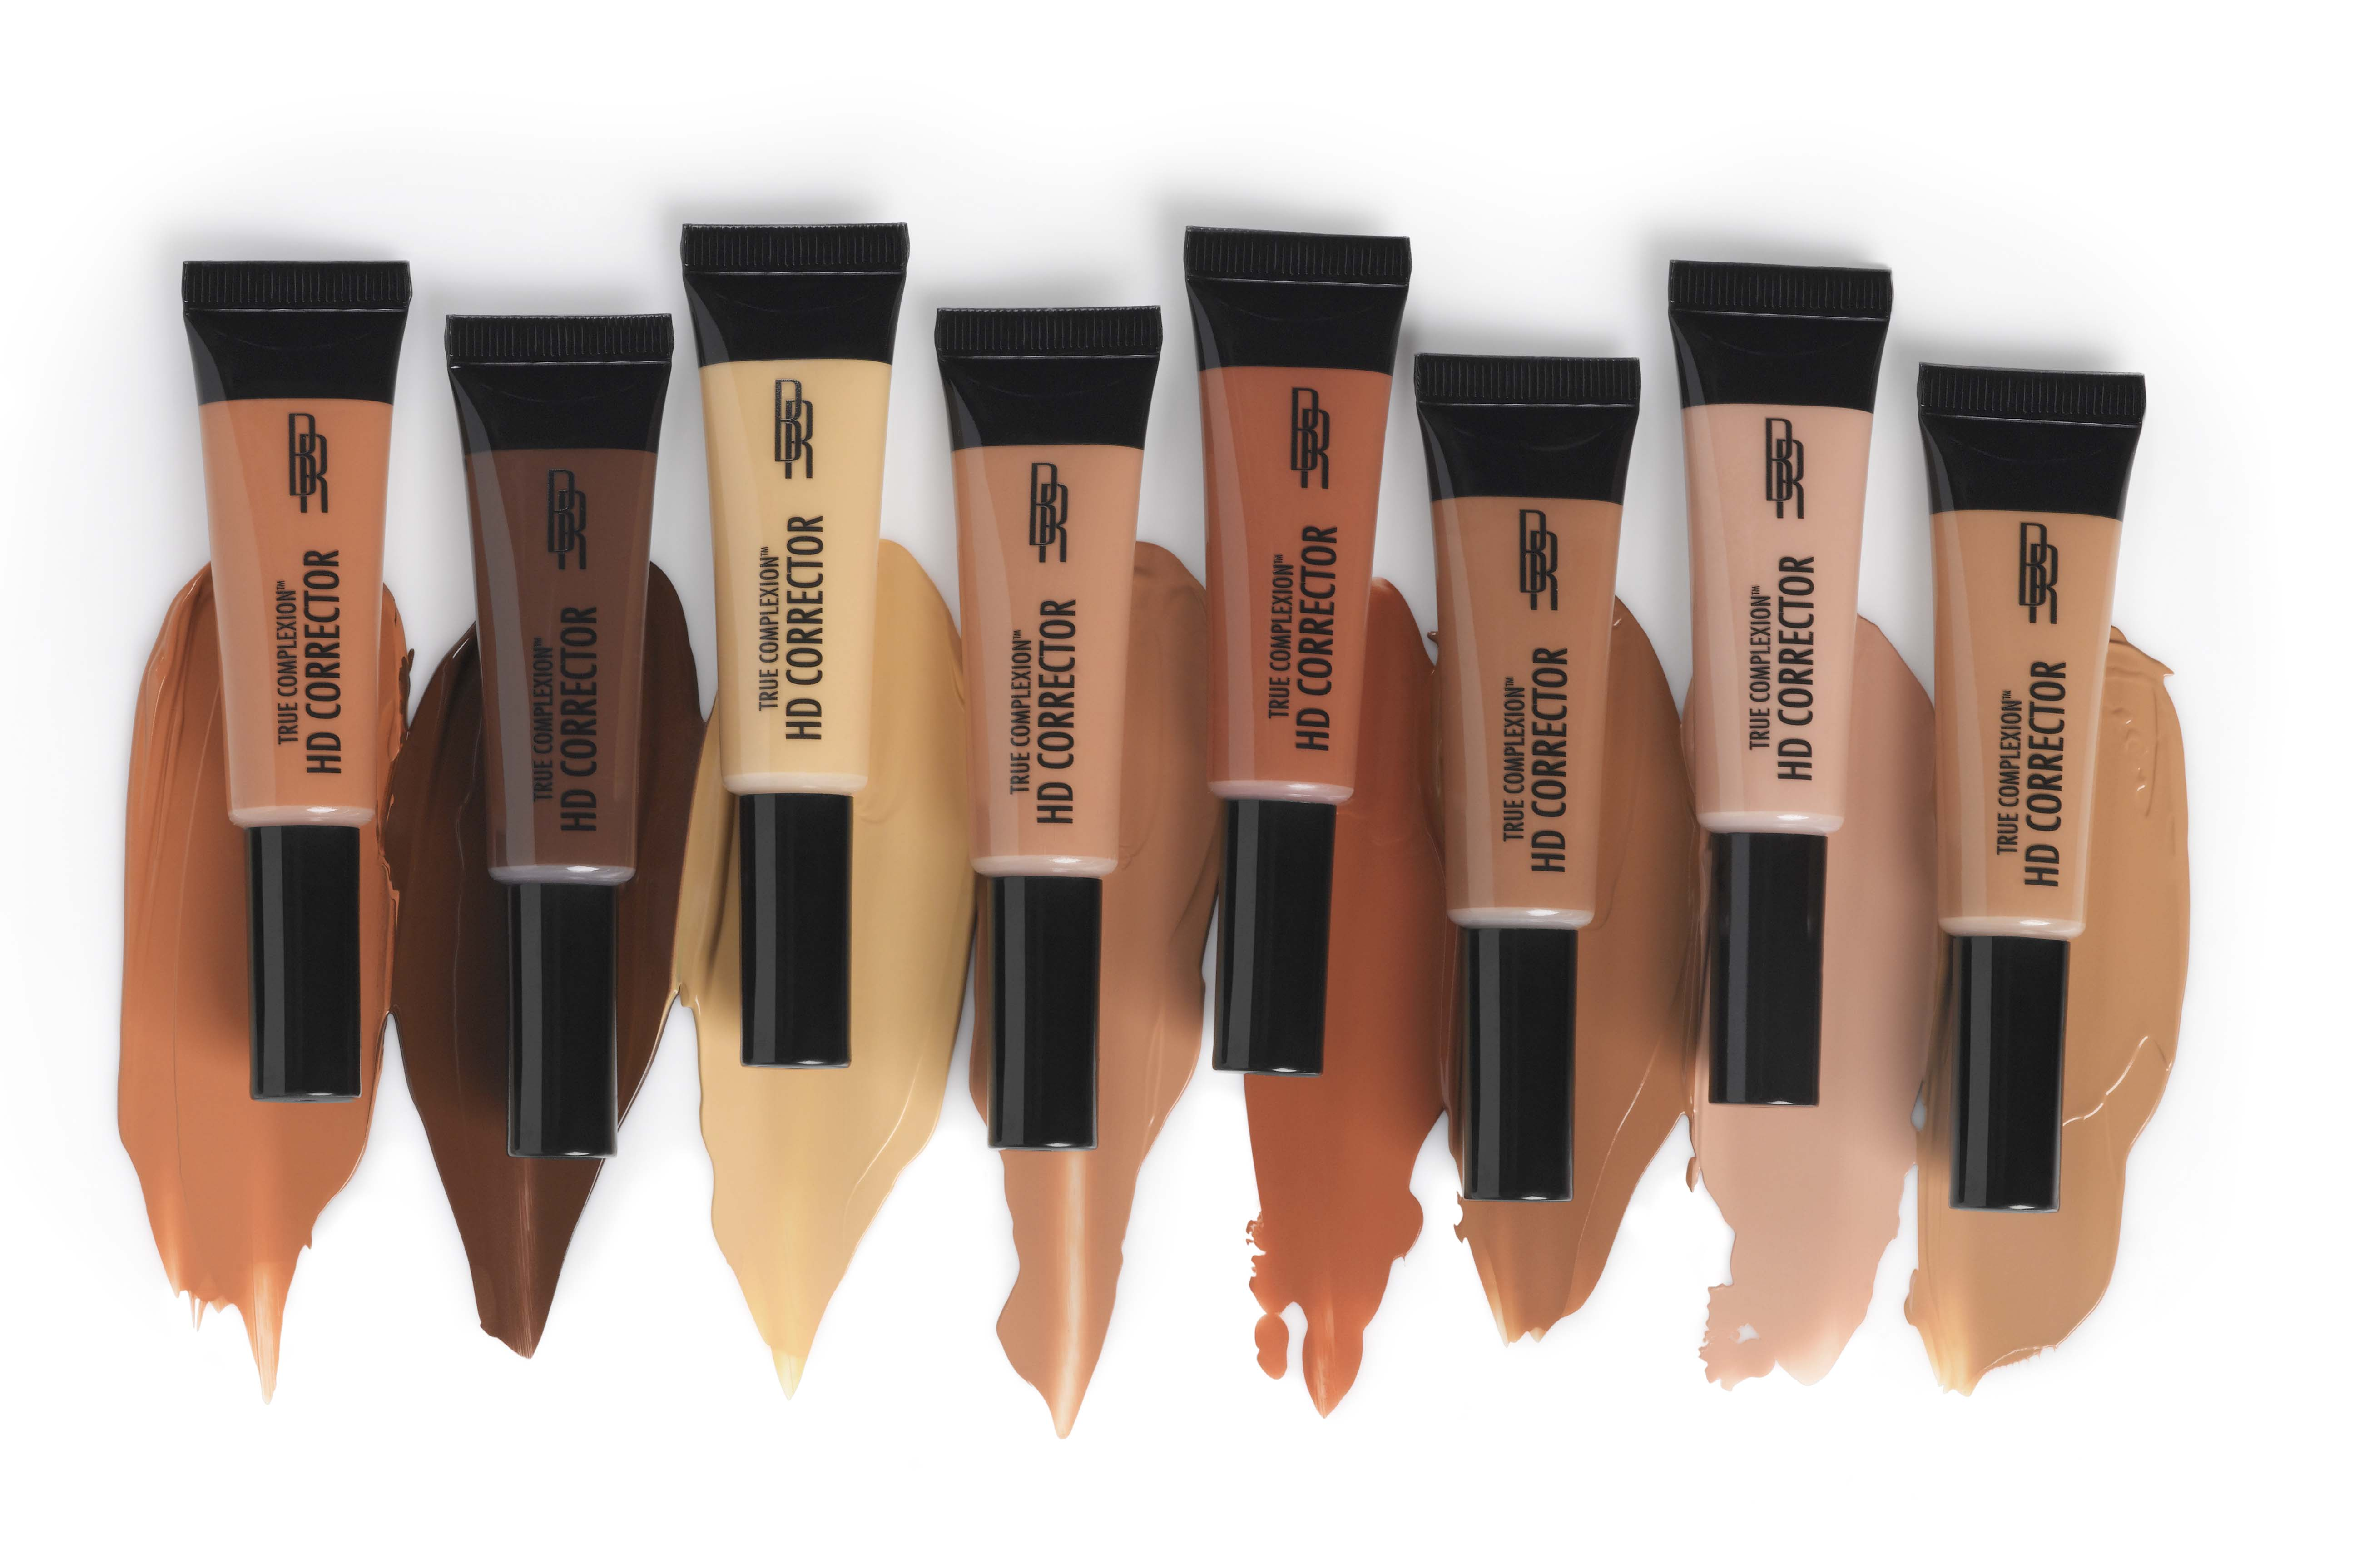 Black Radiance True Complexion HD Corrector Collection